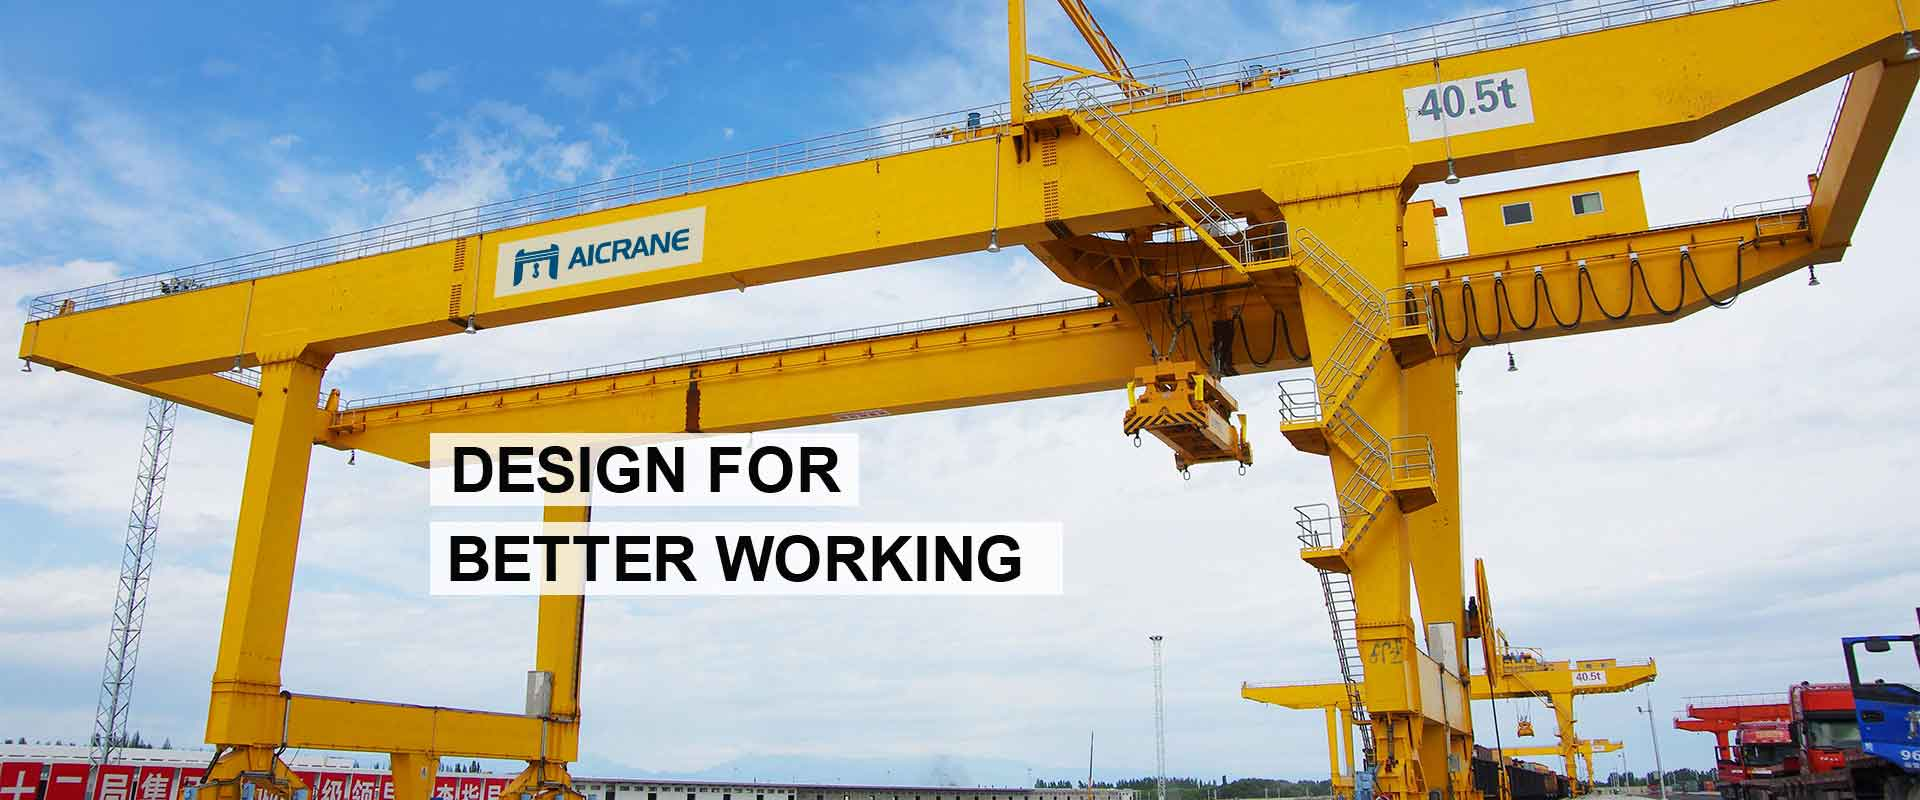 aicrane gantry crane supplier